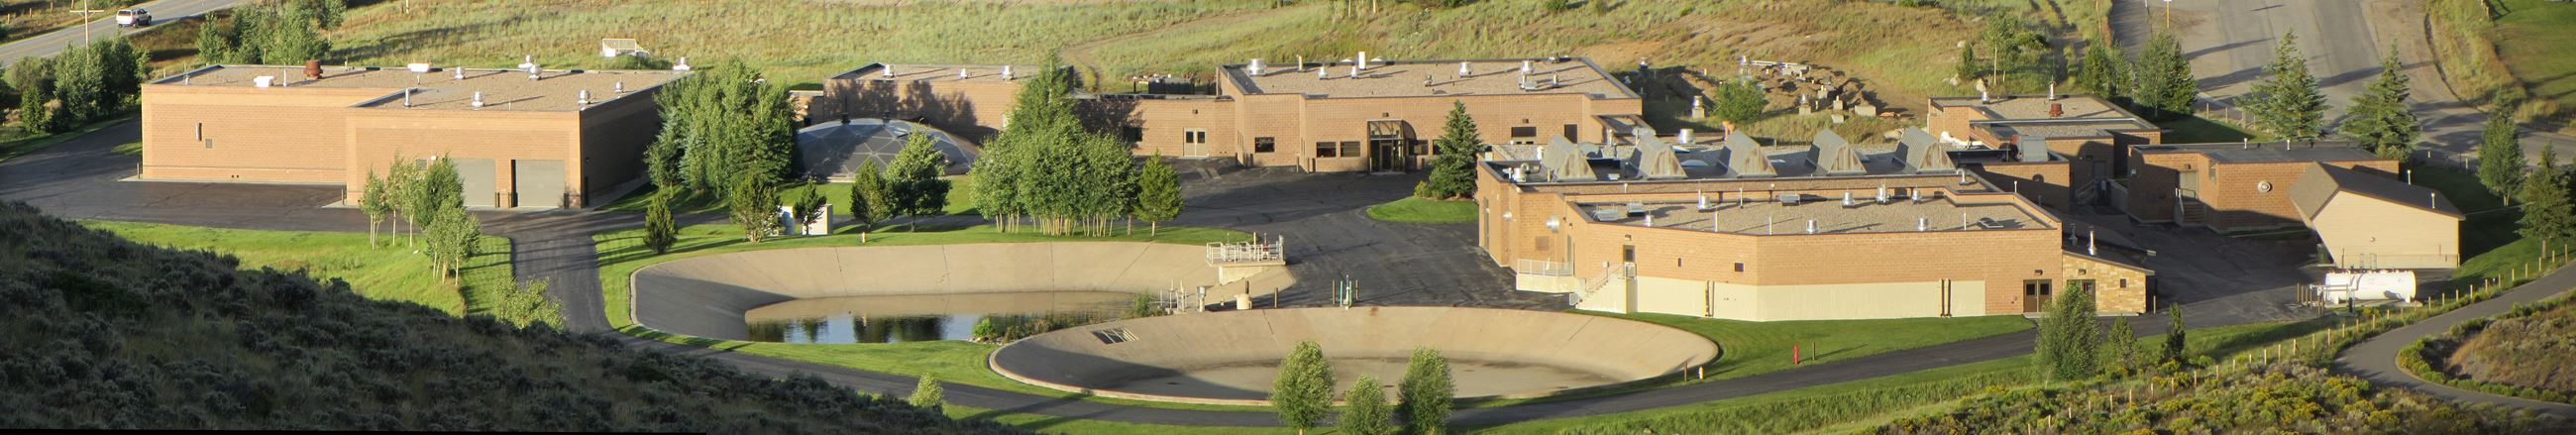 View of Snake River Waste Water Treatment Plant